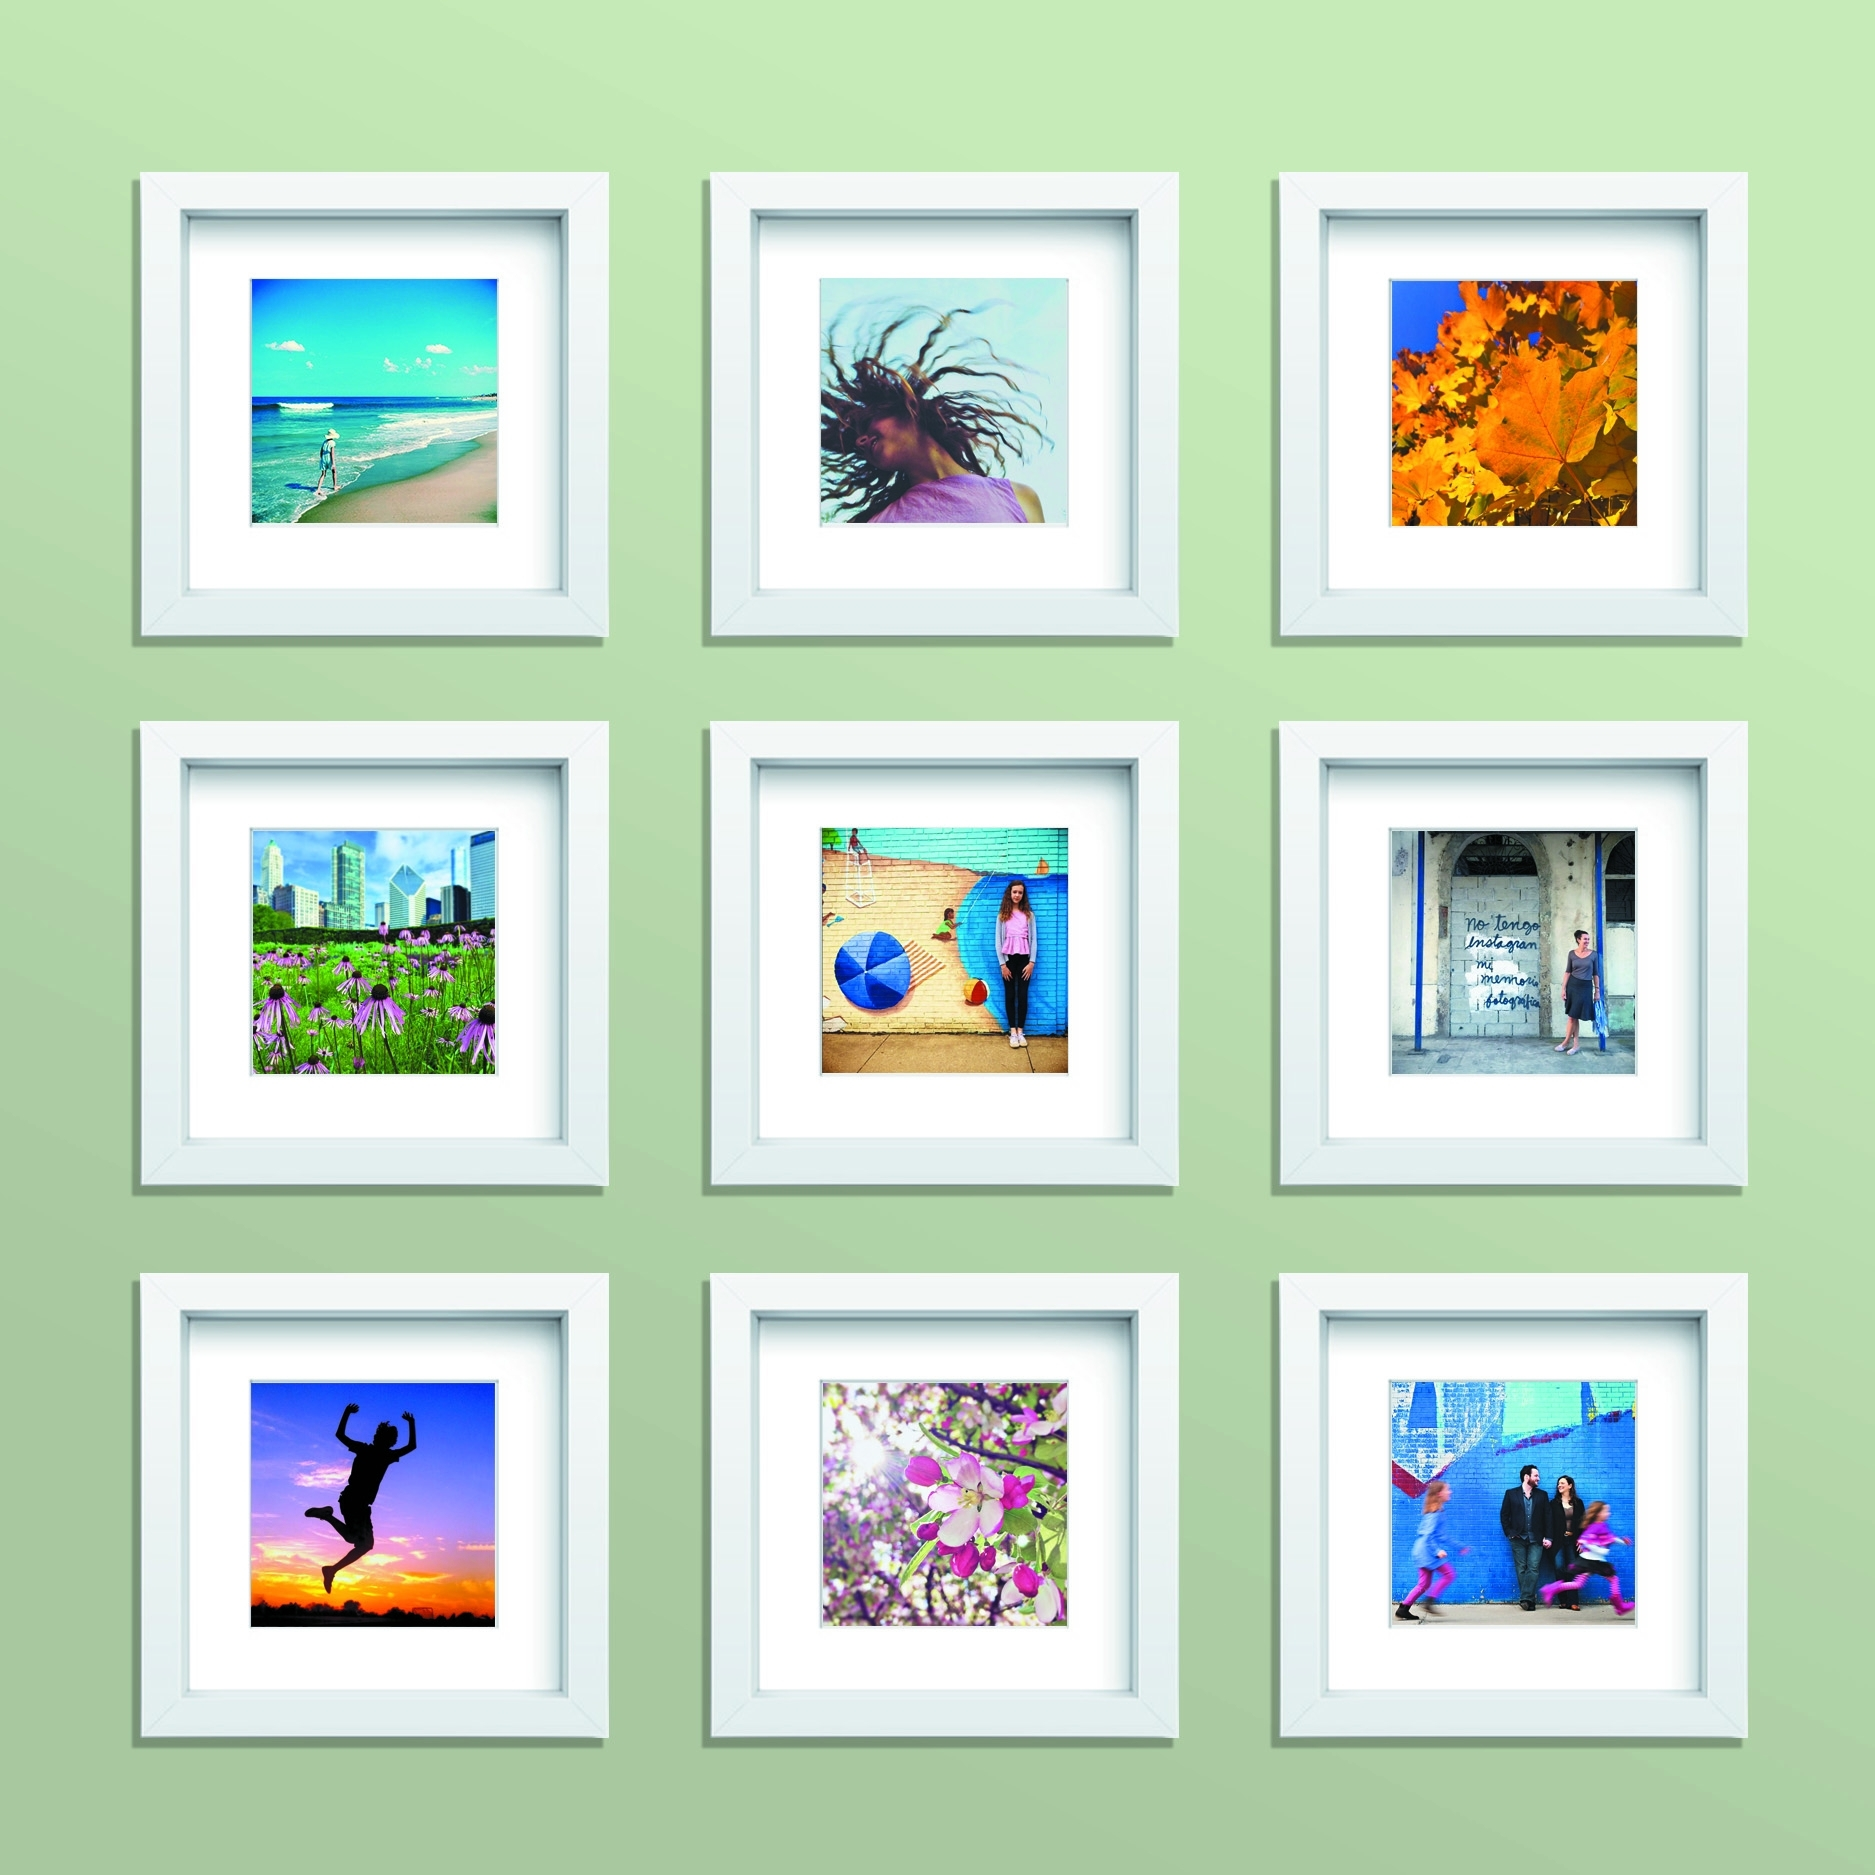 How To Turn Instagram Photos Into Wall Art | Long Island Pulse Magazine with Instagram Wall Art (Image 11 of 20)